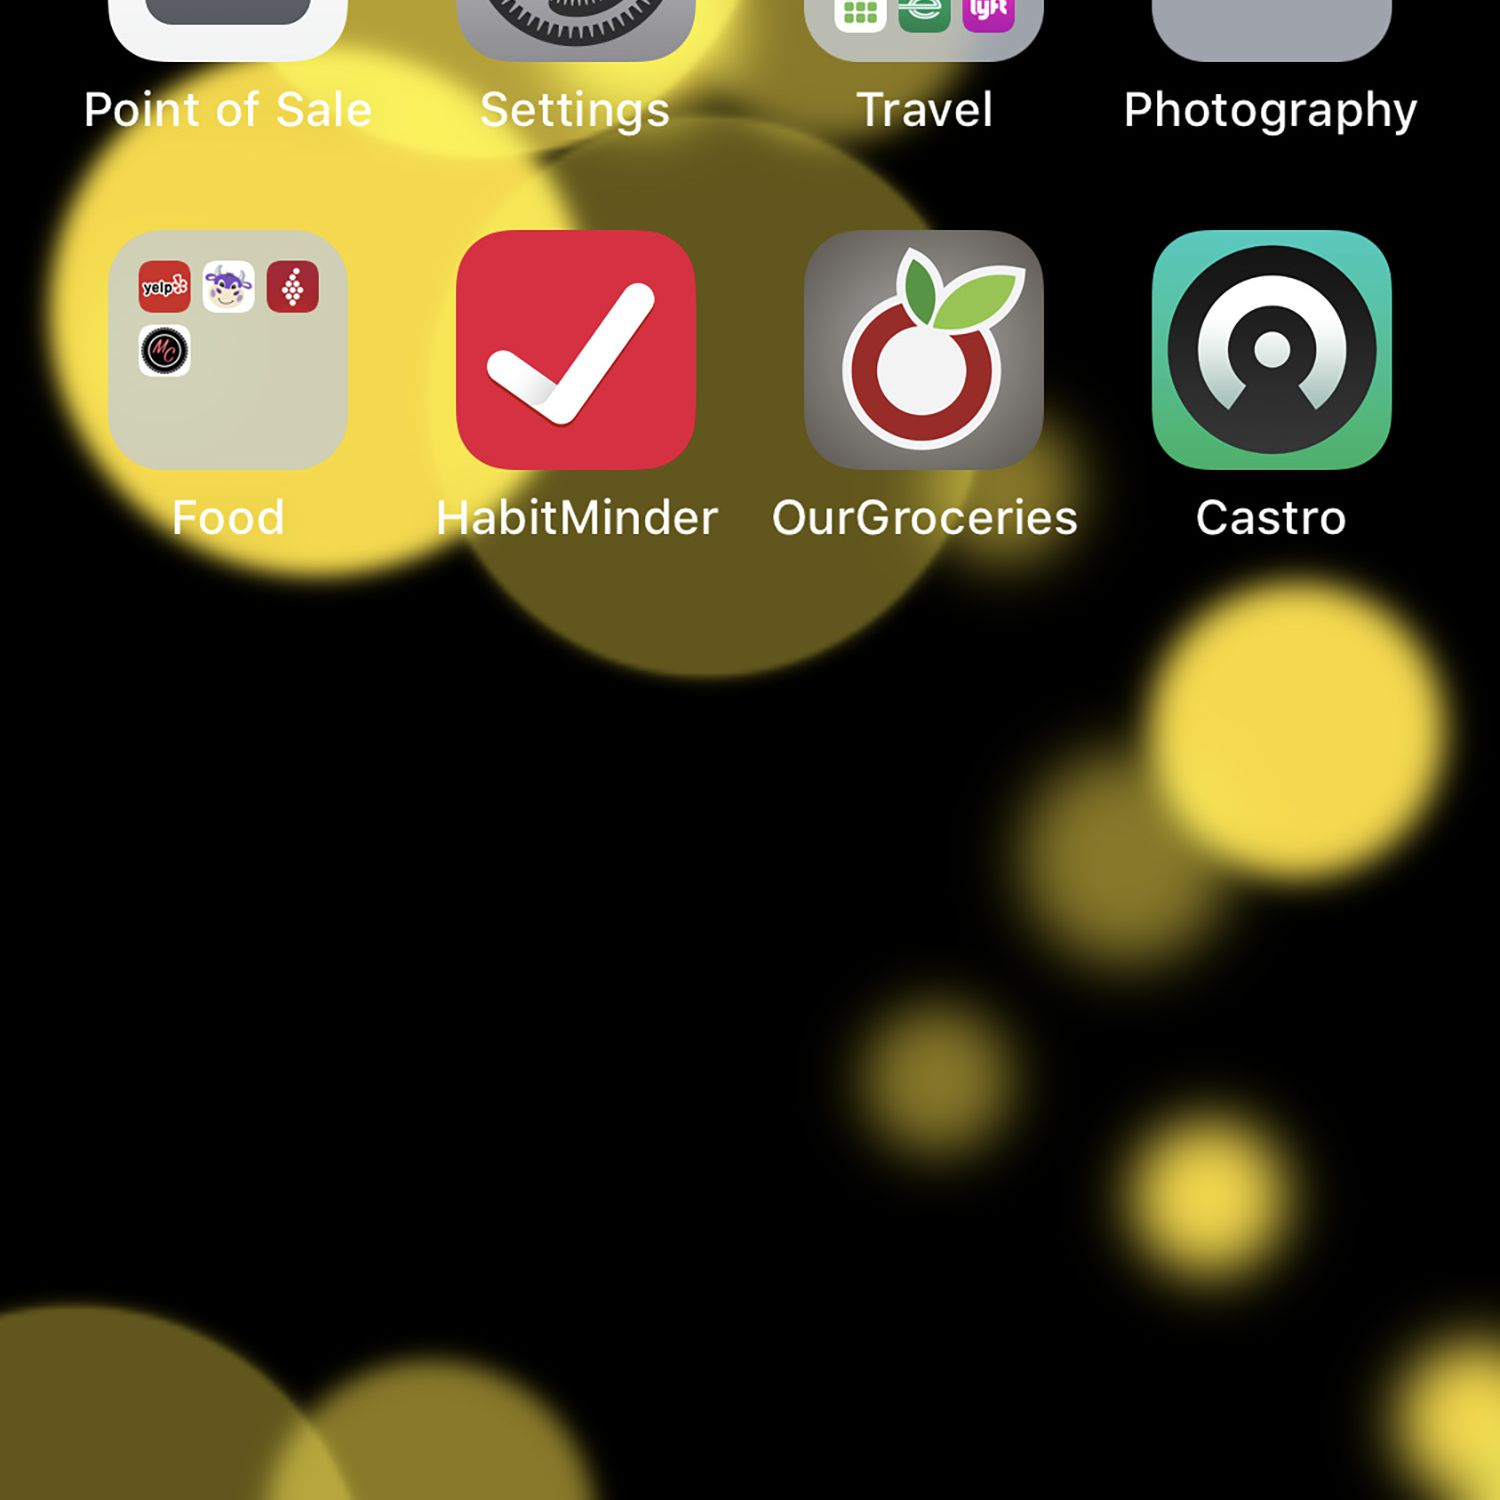 Dynamic Wallpaper On Iphone